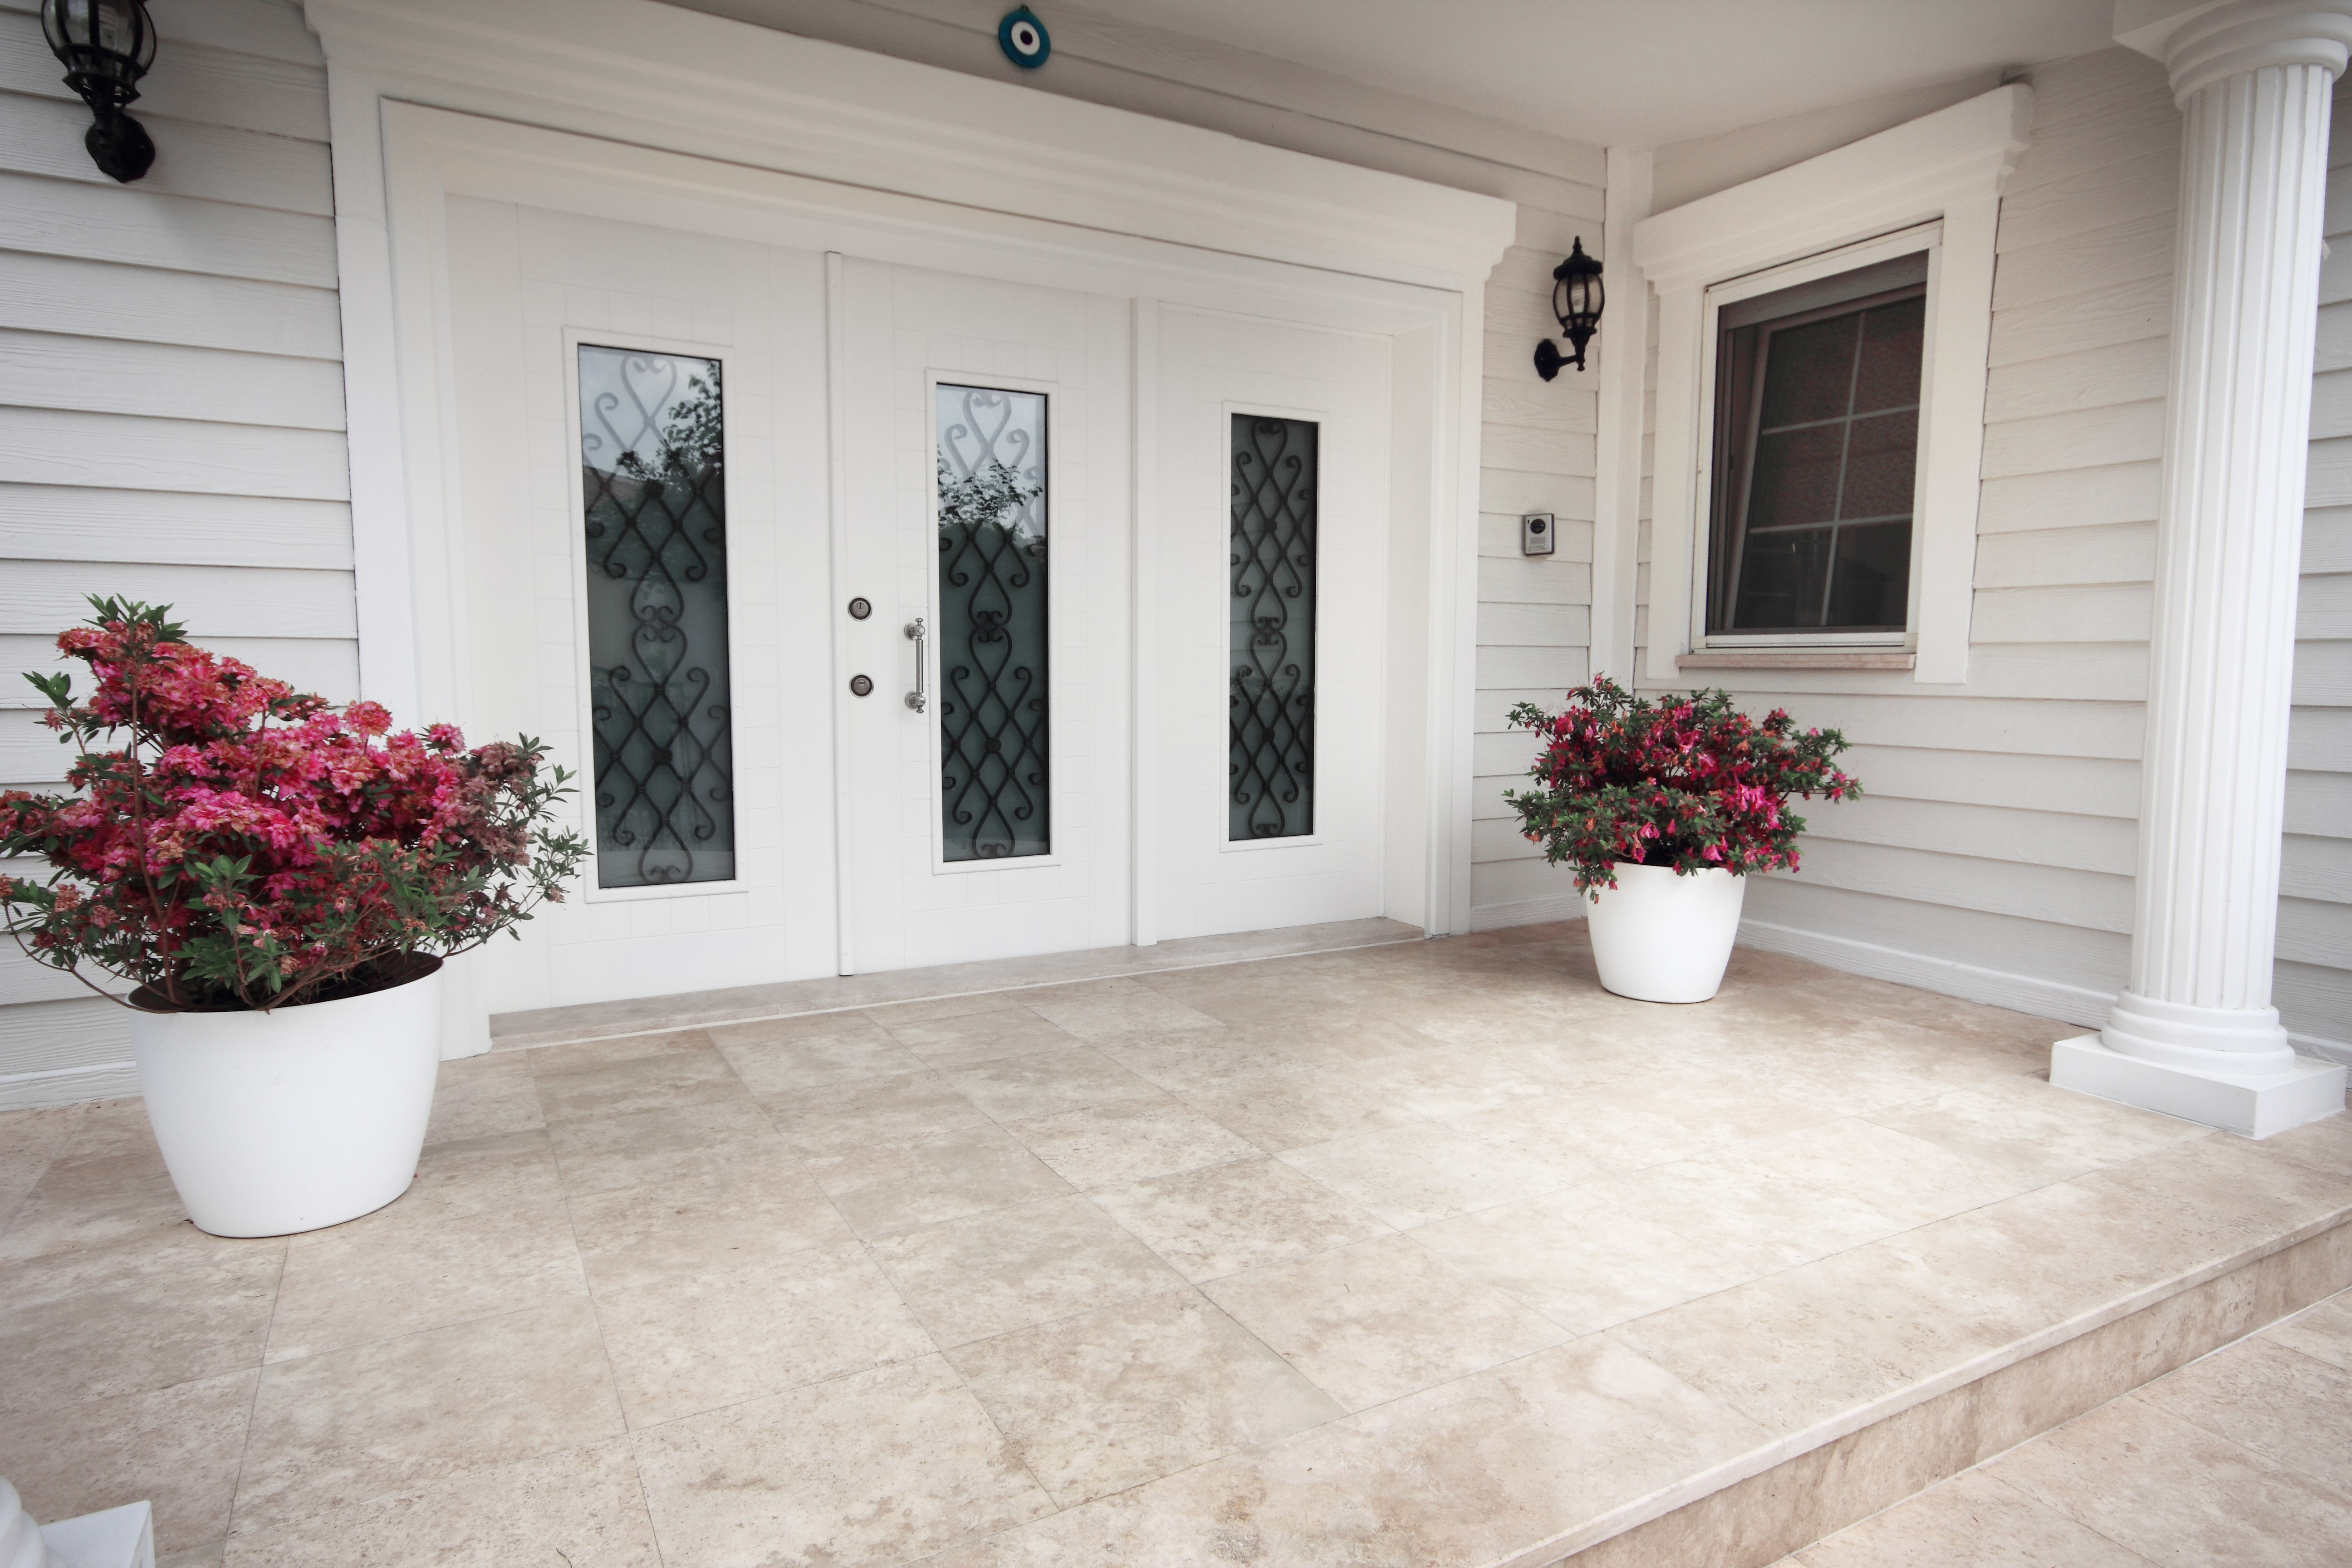 All About Stone and Cladding - Beaumont Tiles